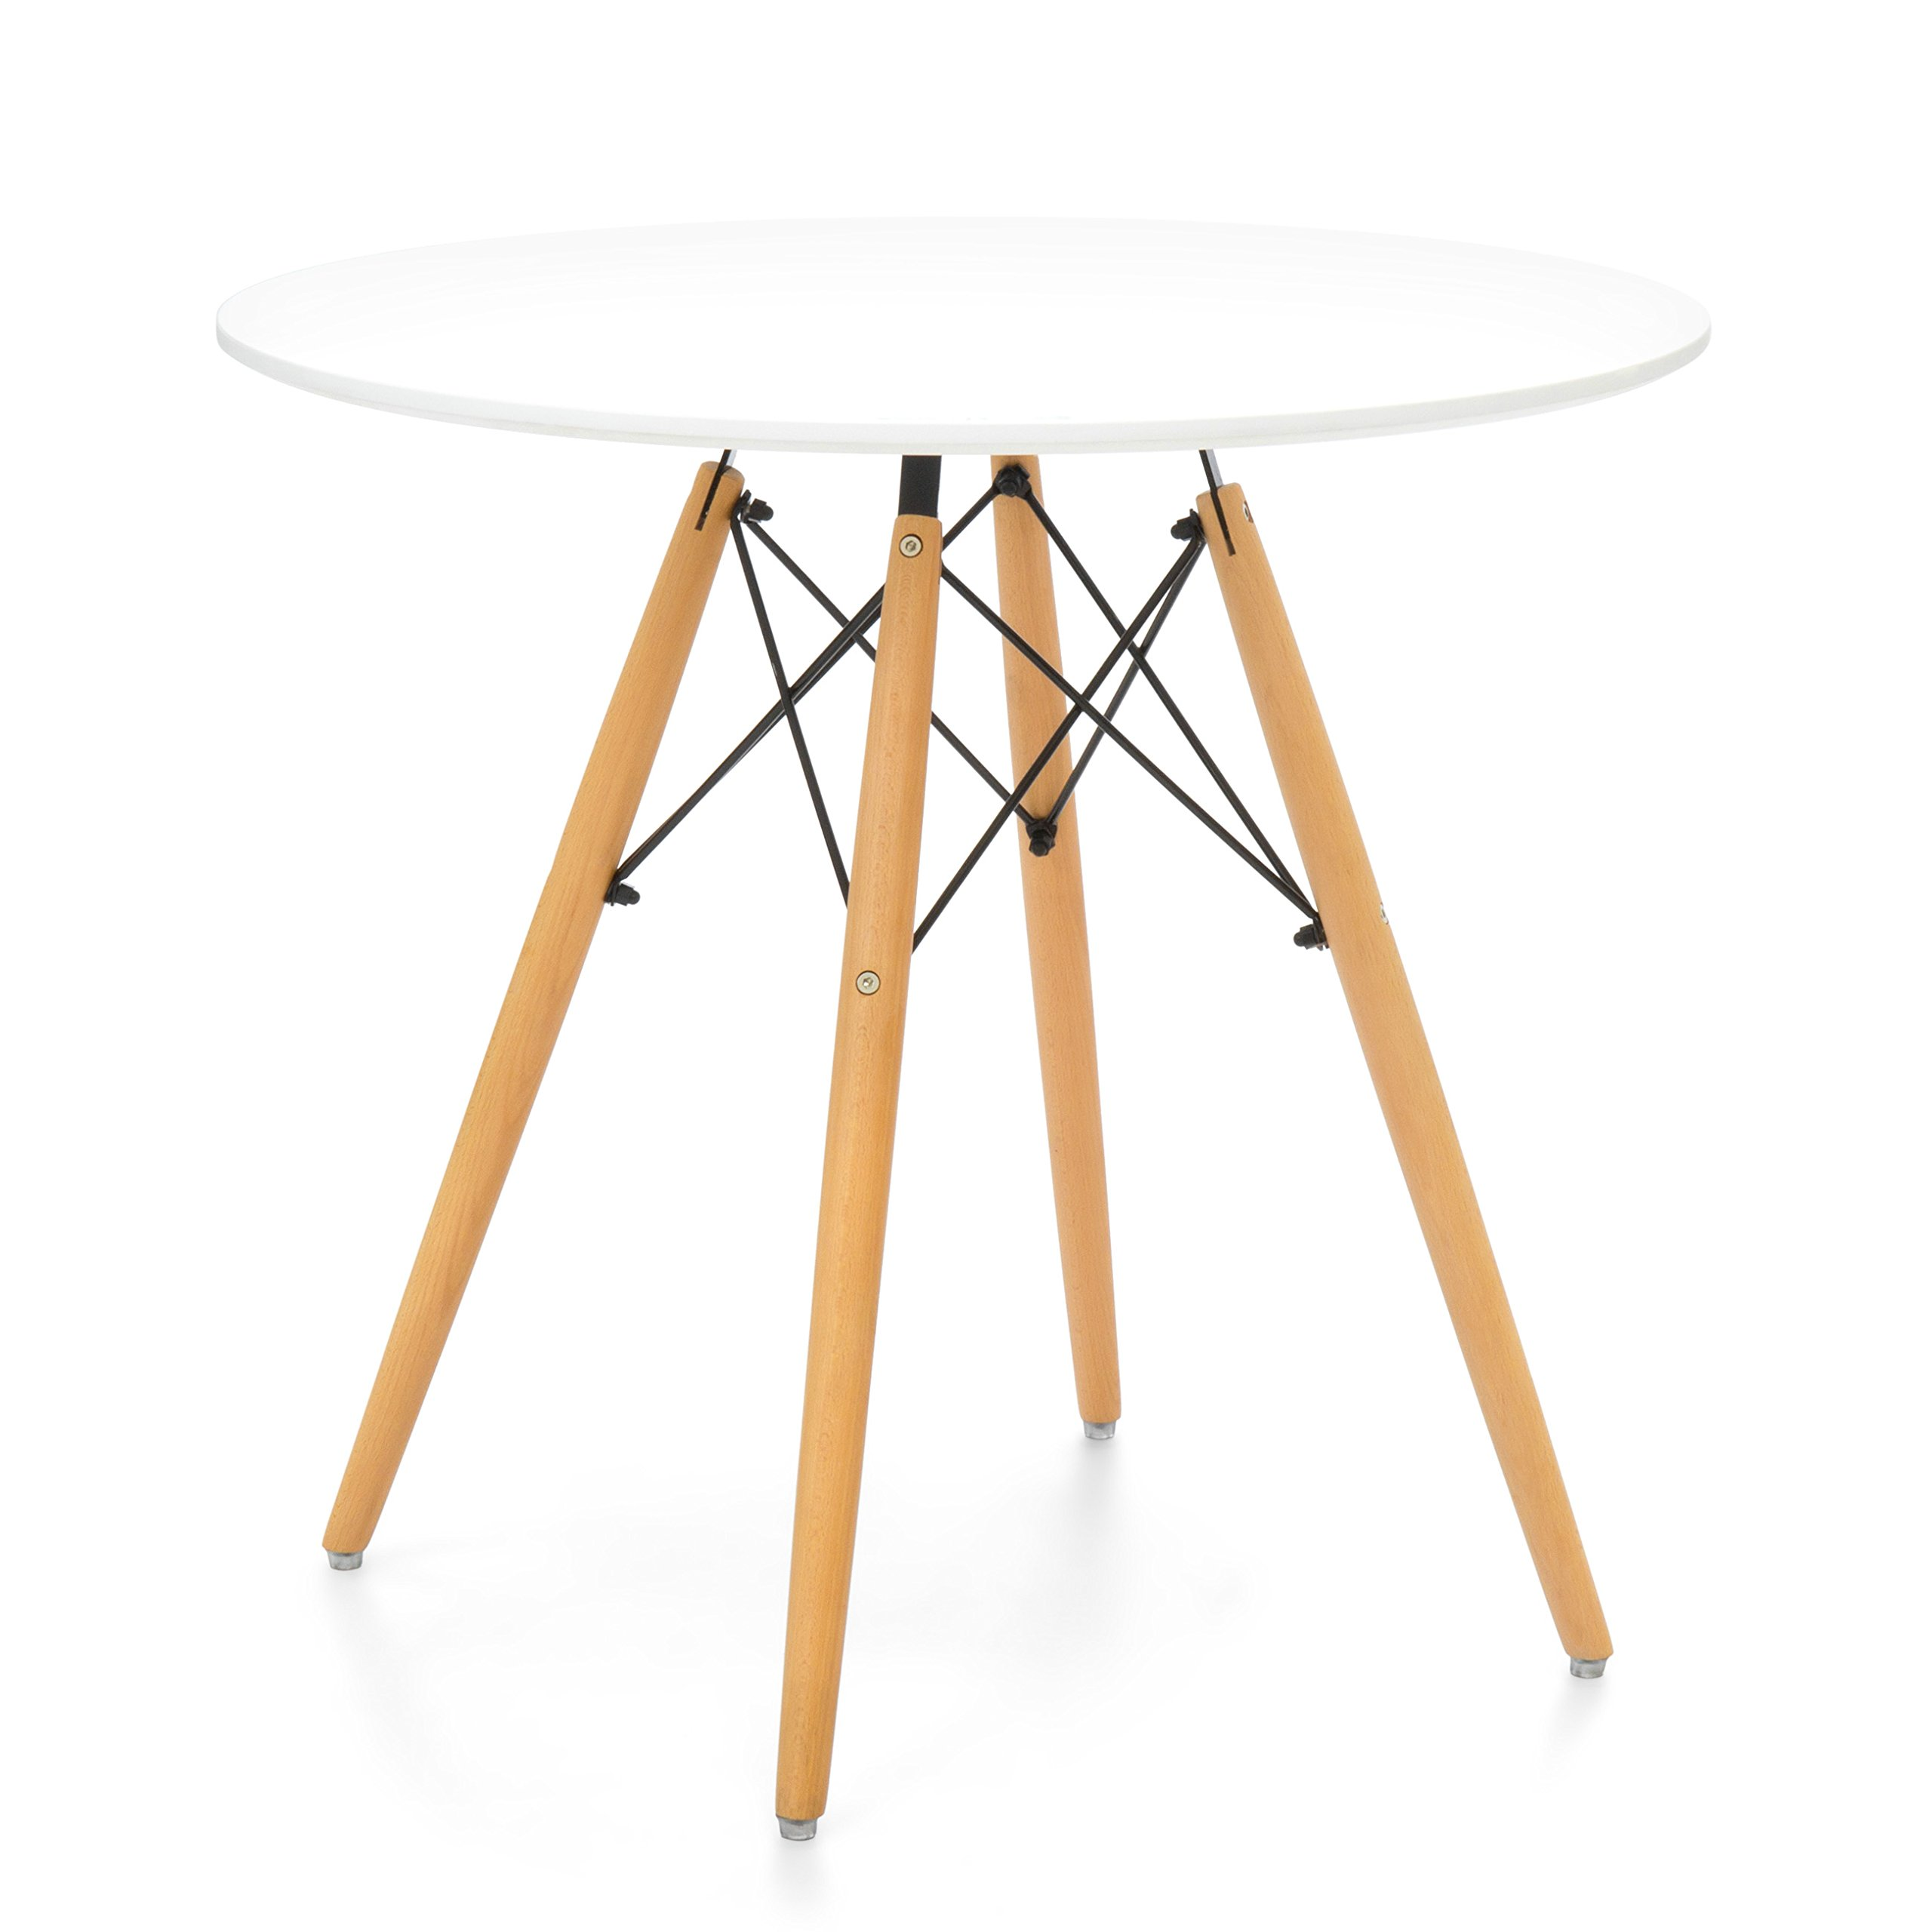 Best Choice Products Mid Century Modern Eames Style Round Dining Table w/Wood Legs White Tabletop